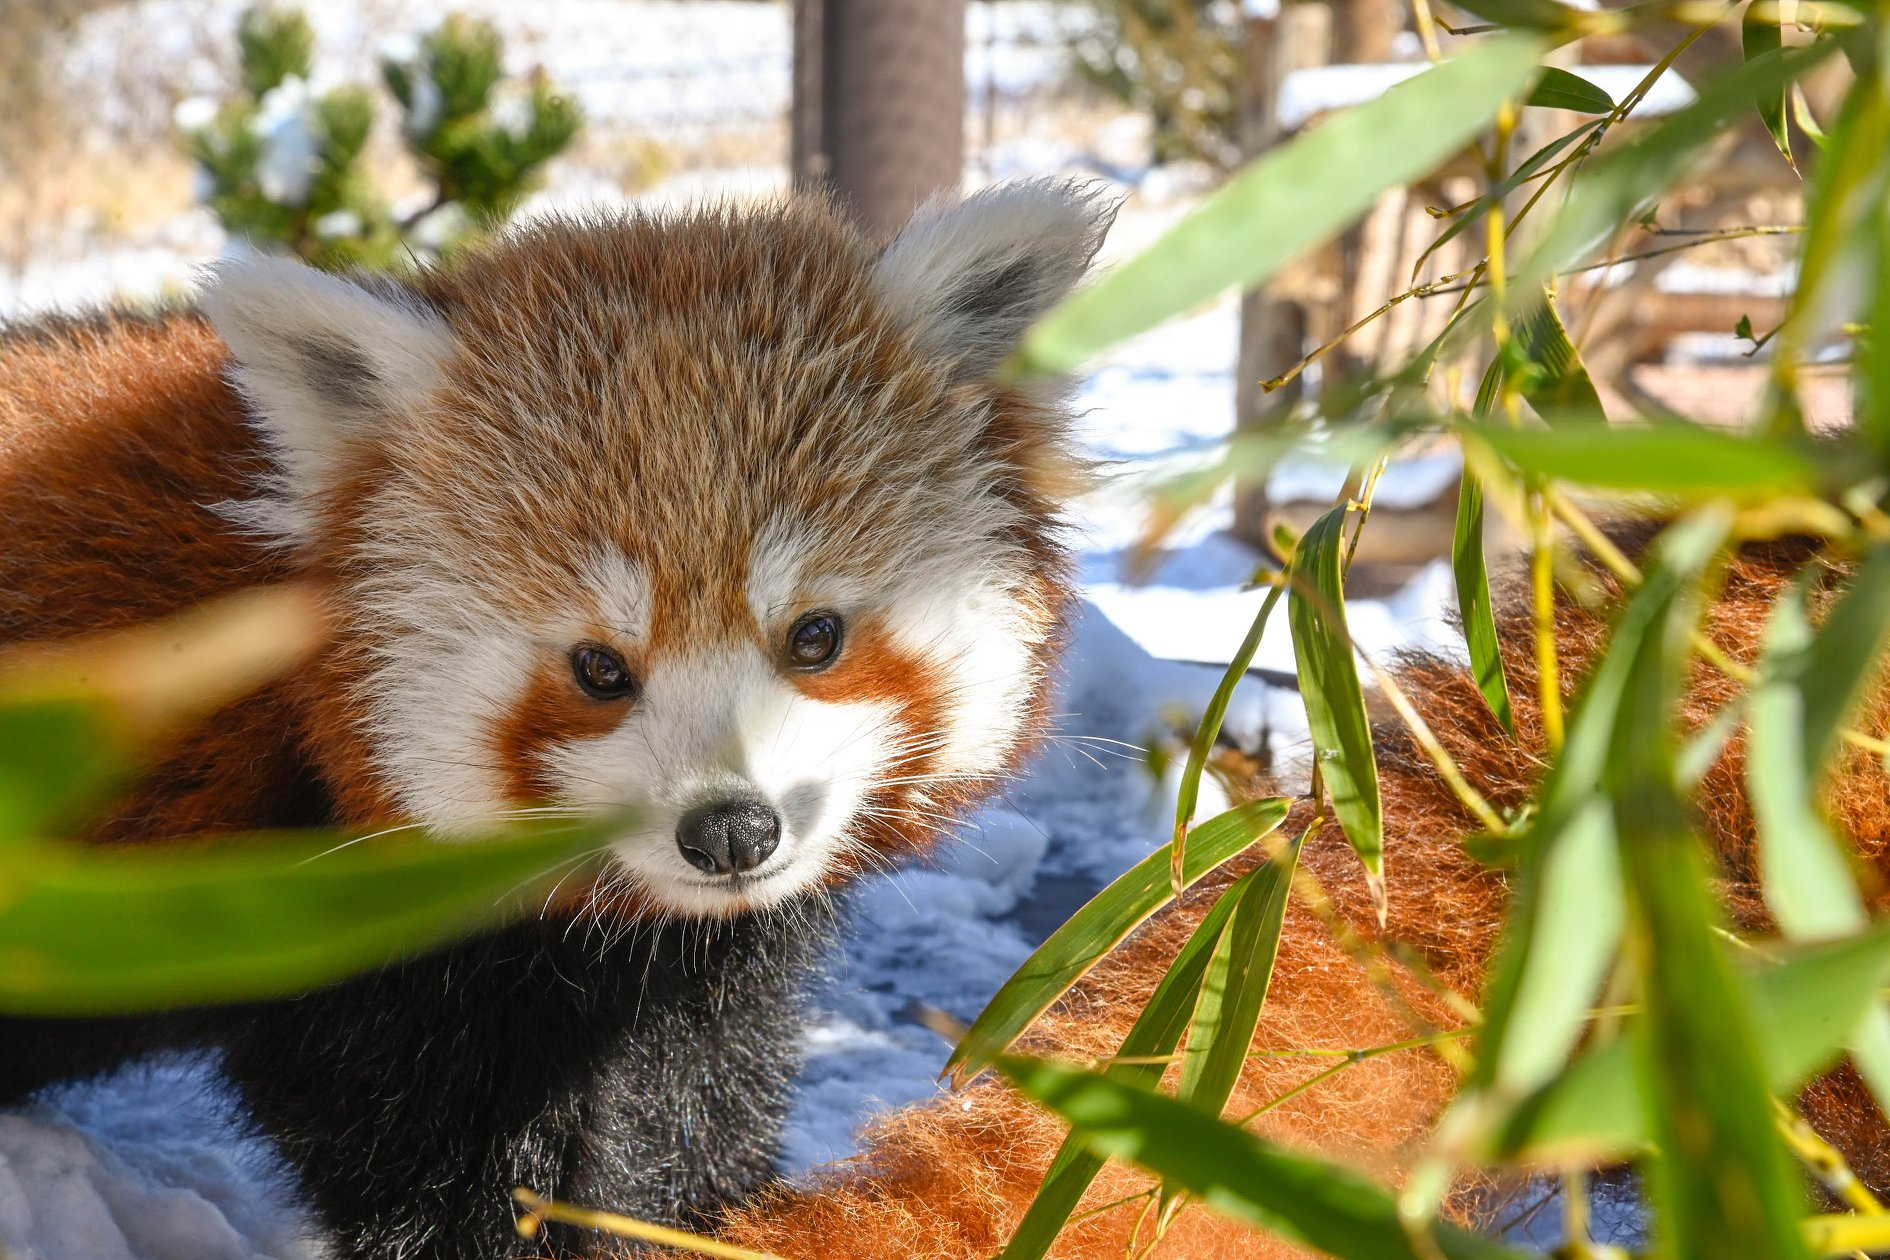 The Red Panda Cam At The Oklahoma City Zoo Is A Delightful Way To Experience Wildlife From Afar